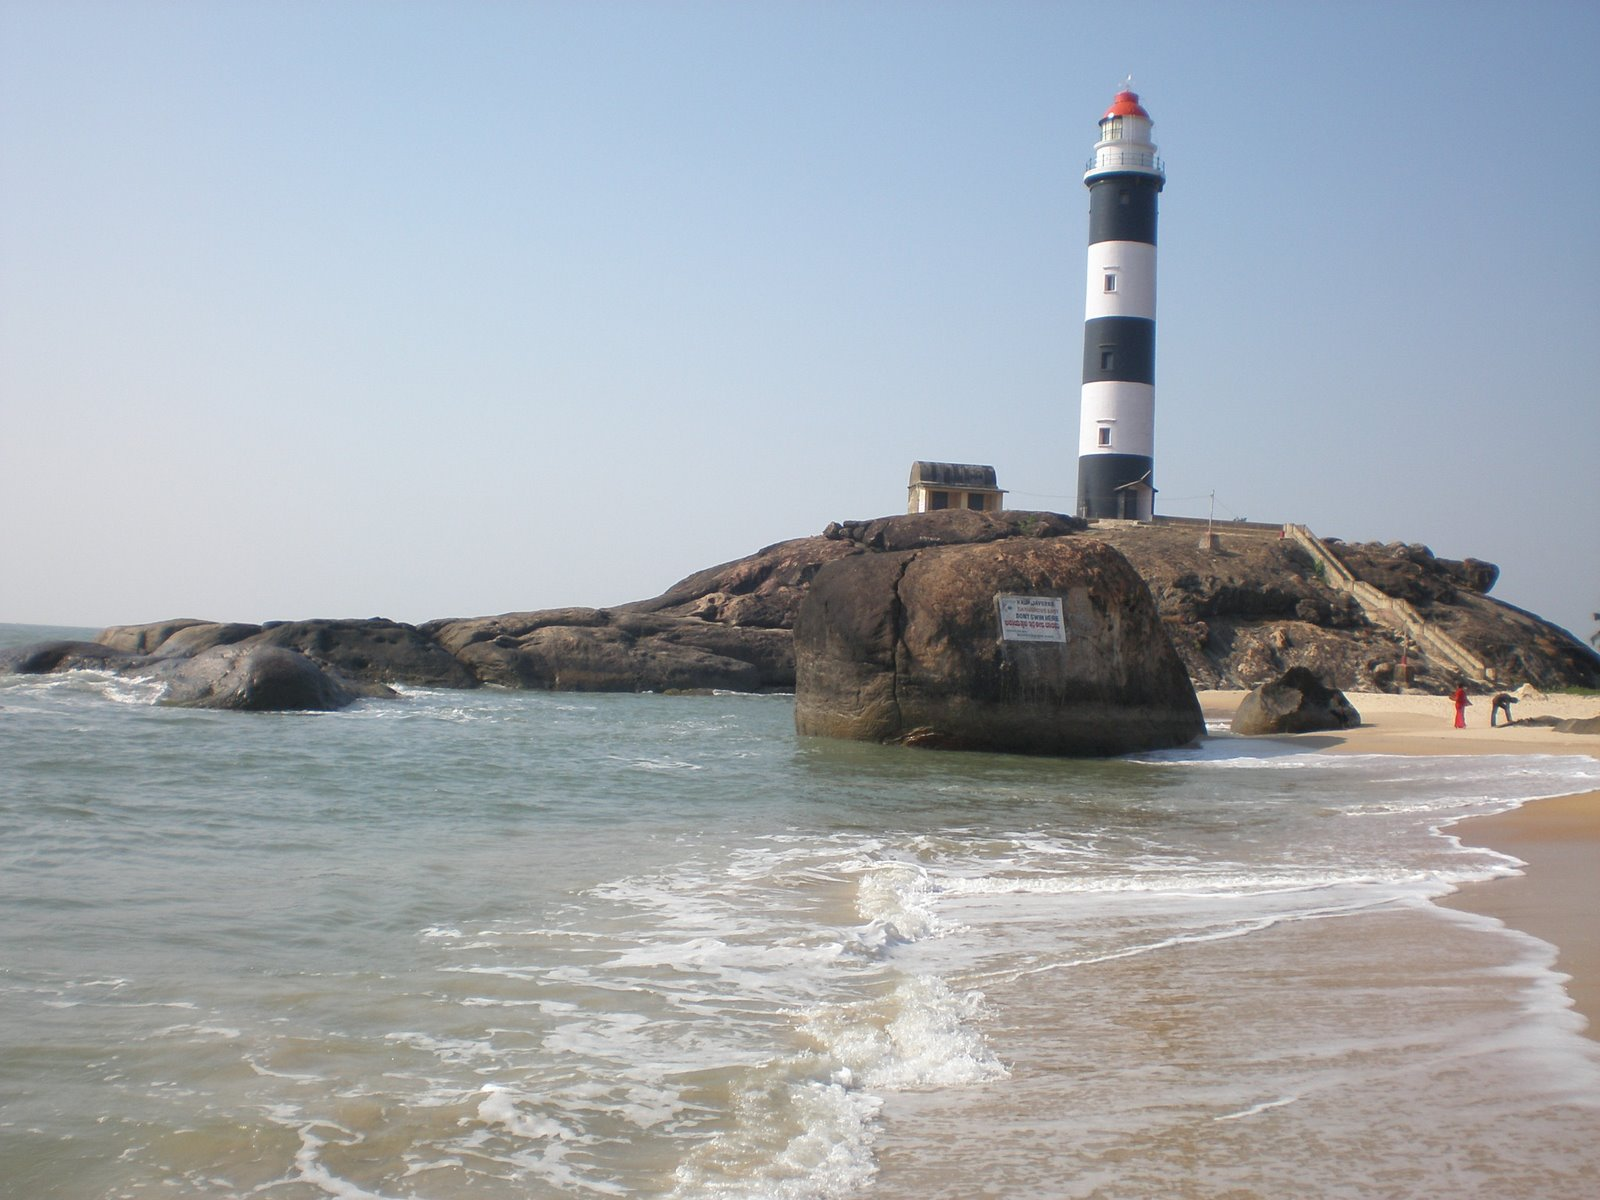 Temple City Udupi: 10 Best Places To Explore In 2020 1